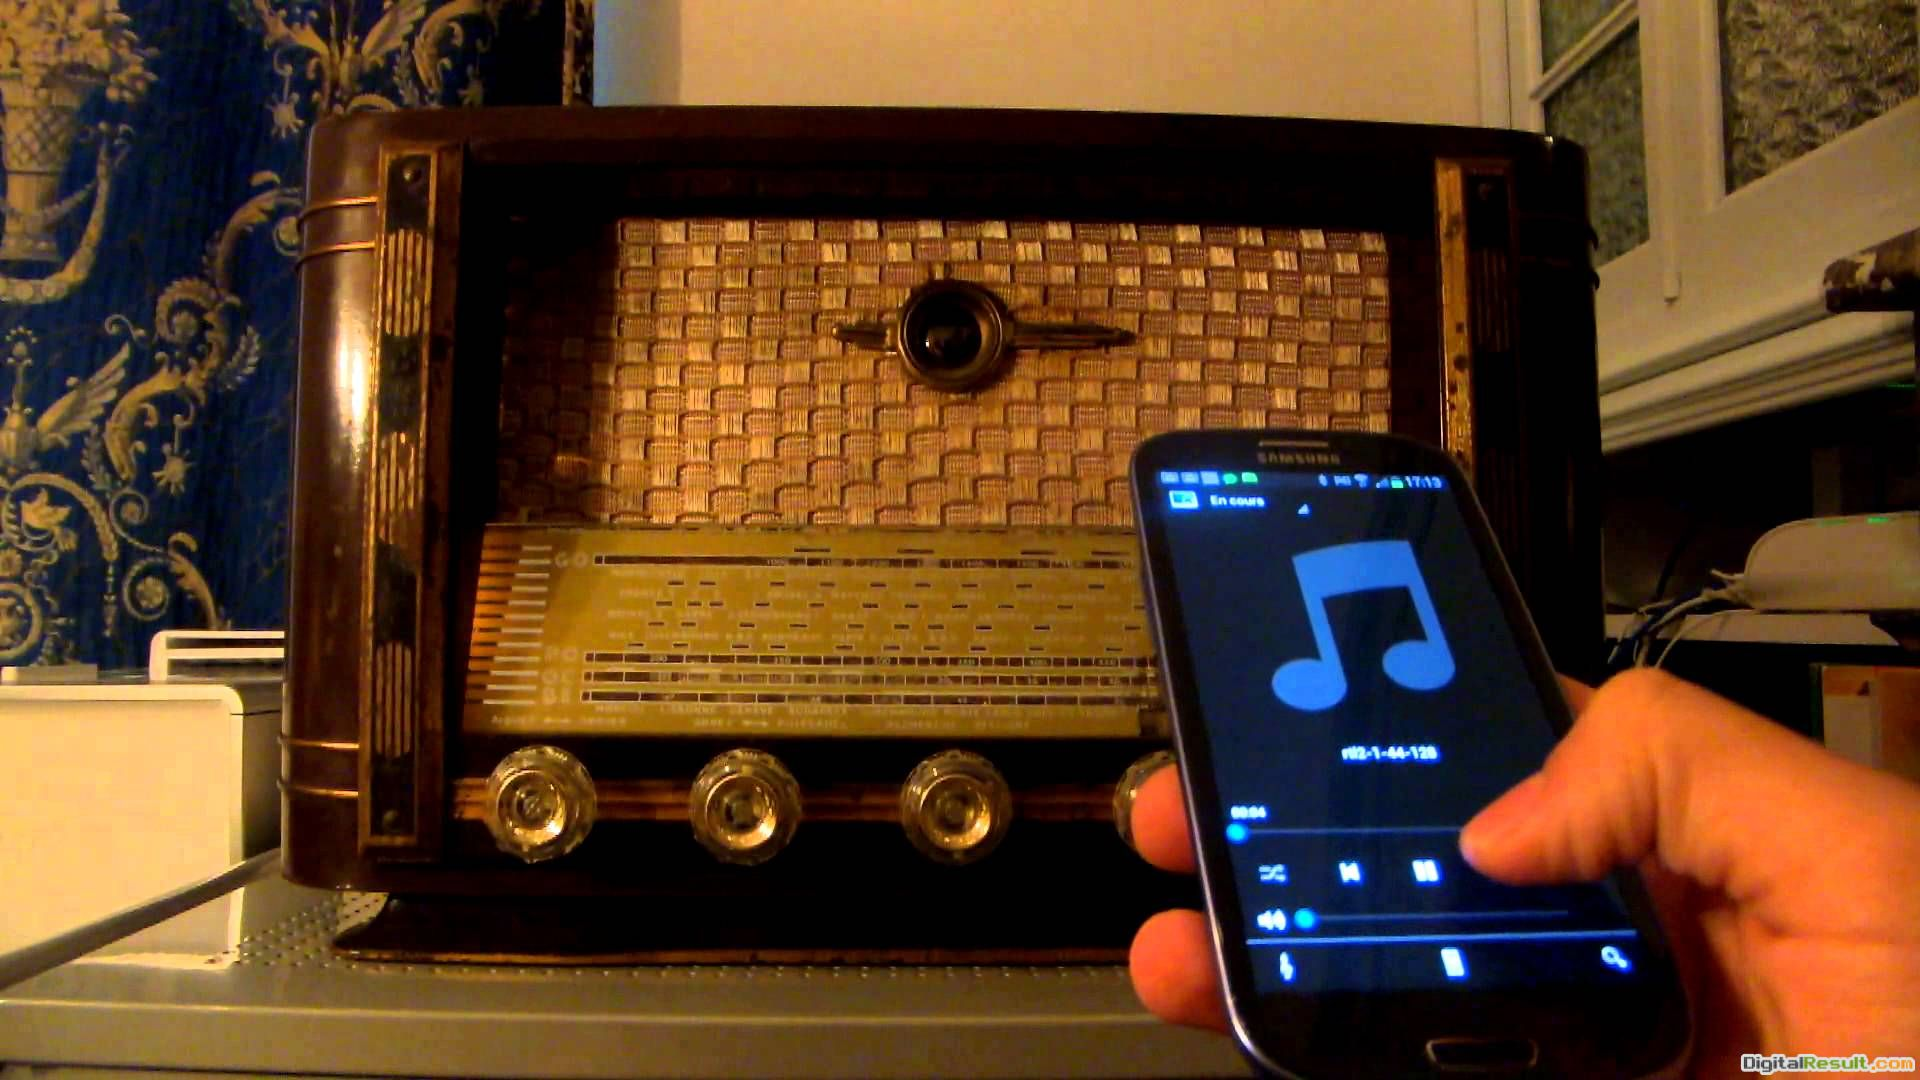 Vintage Radio Wallpaper Reelapi : vintage radio from 1672